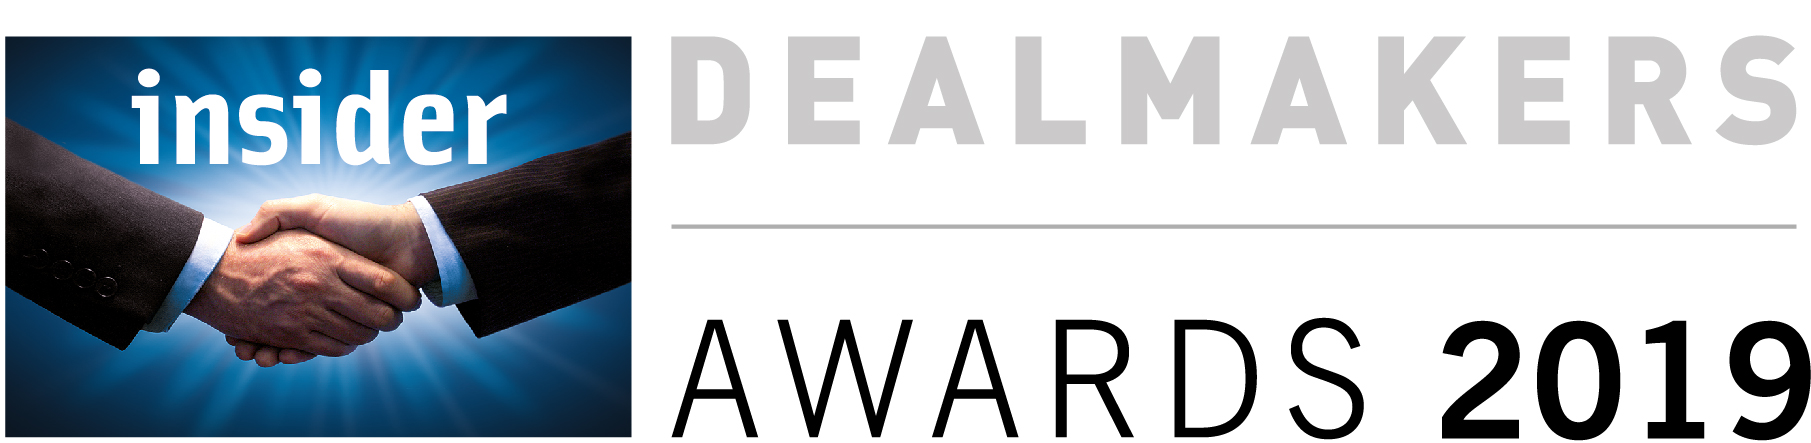 Dealmaker_Awards_2019.jpg